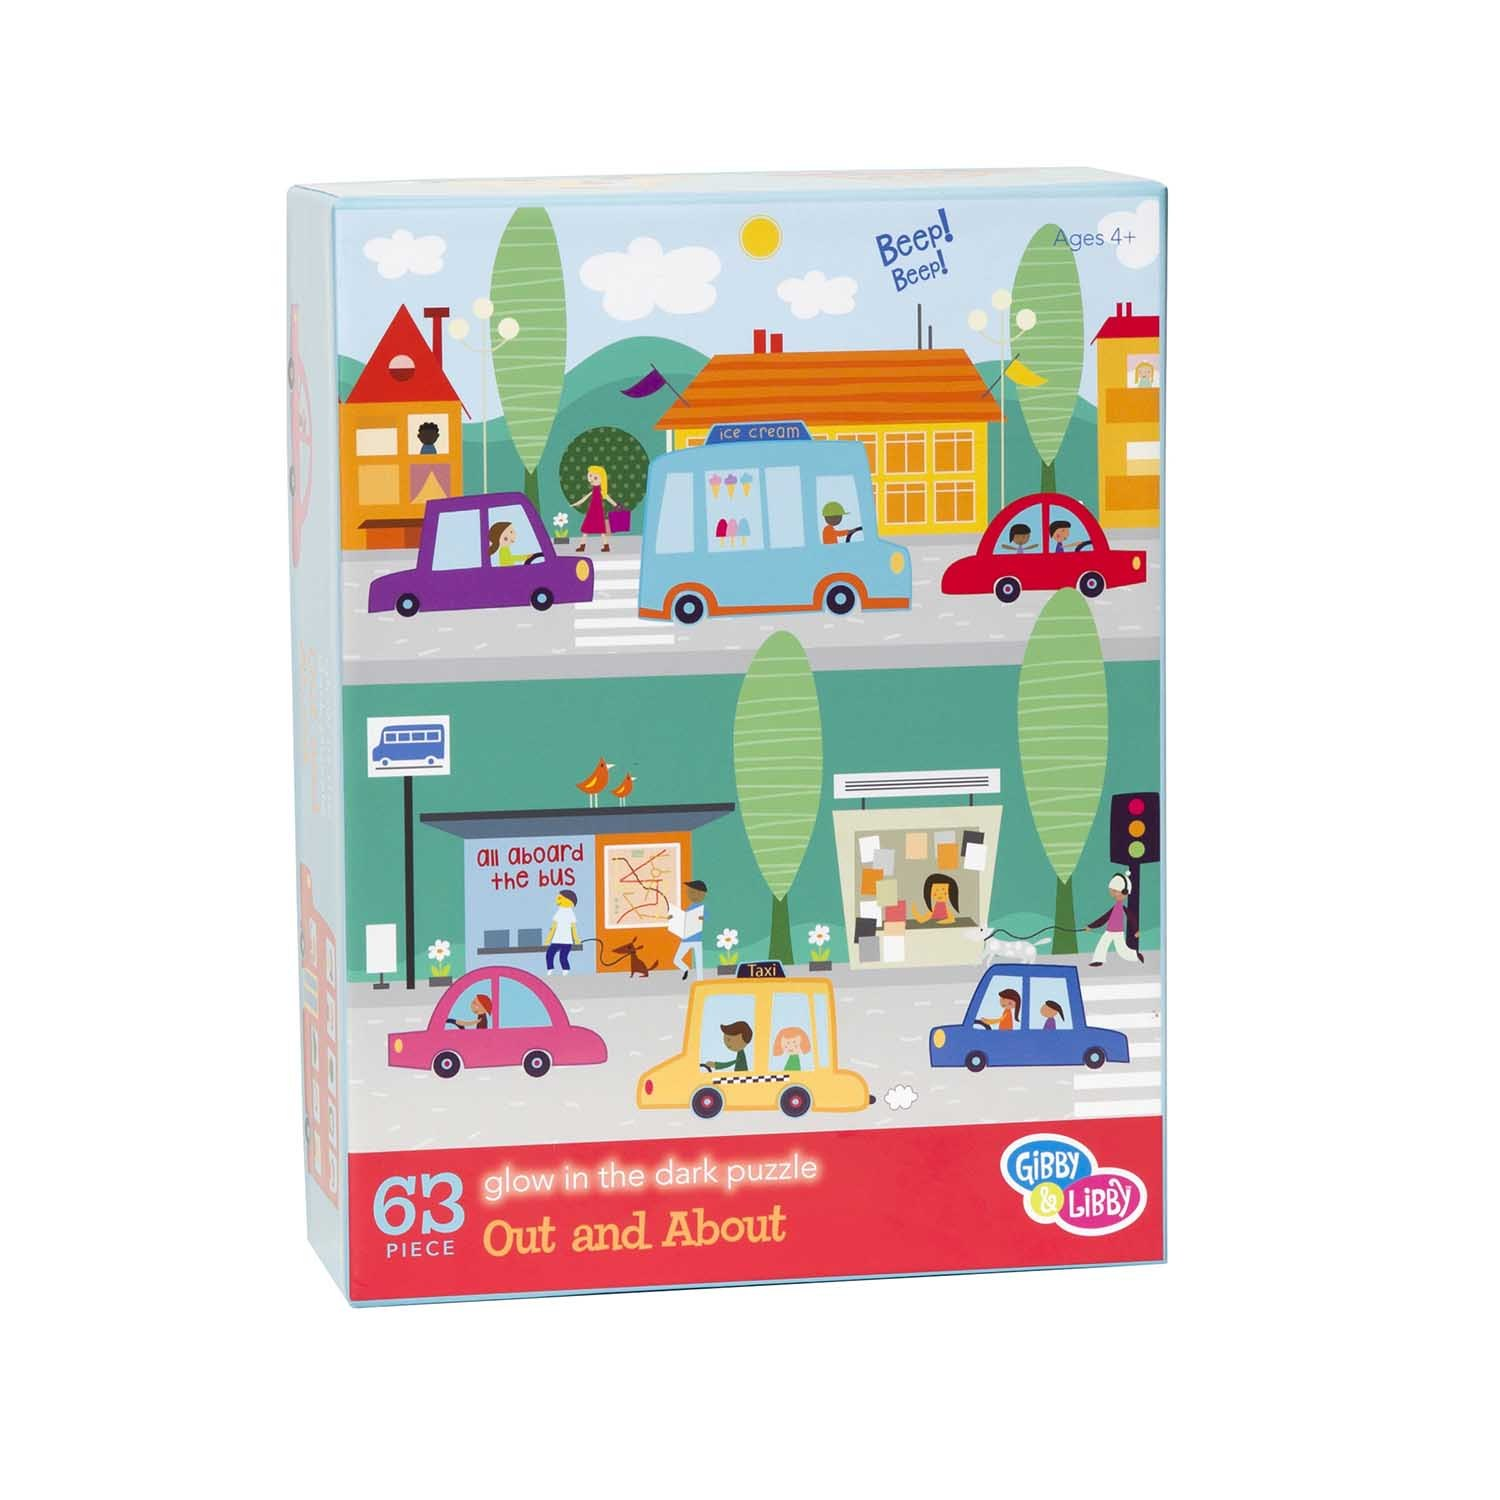 EU BKP3 16732 OUT AND ABOUT PUZZLE 63 PC